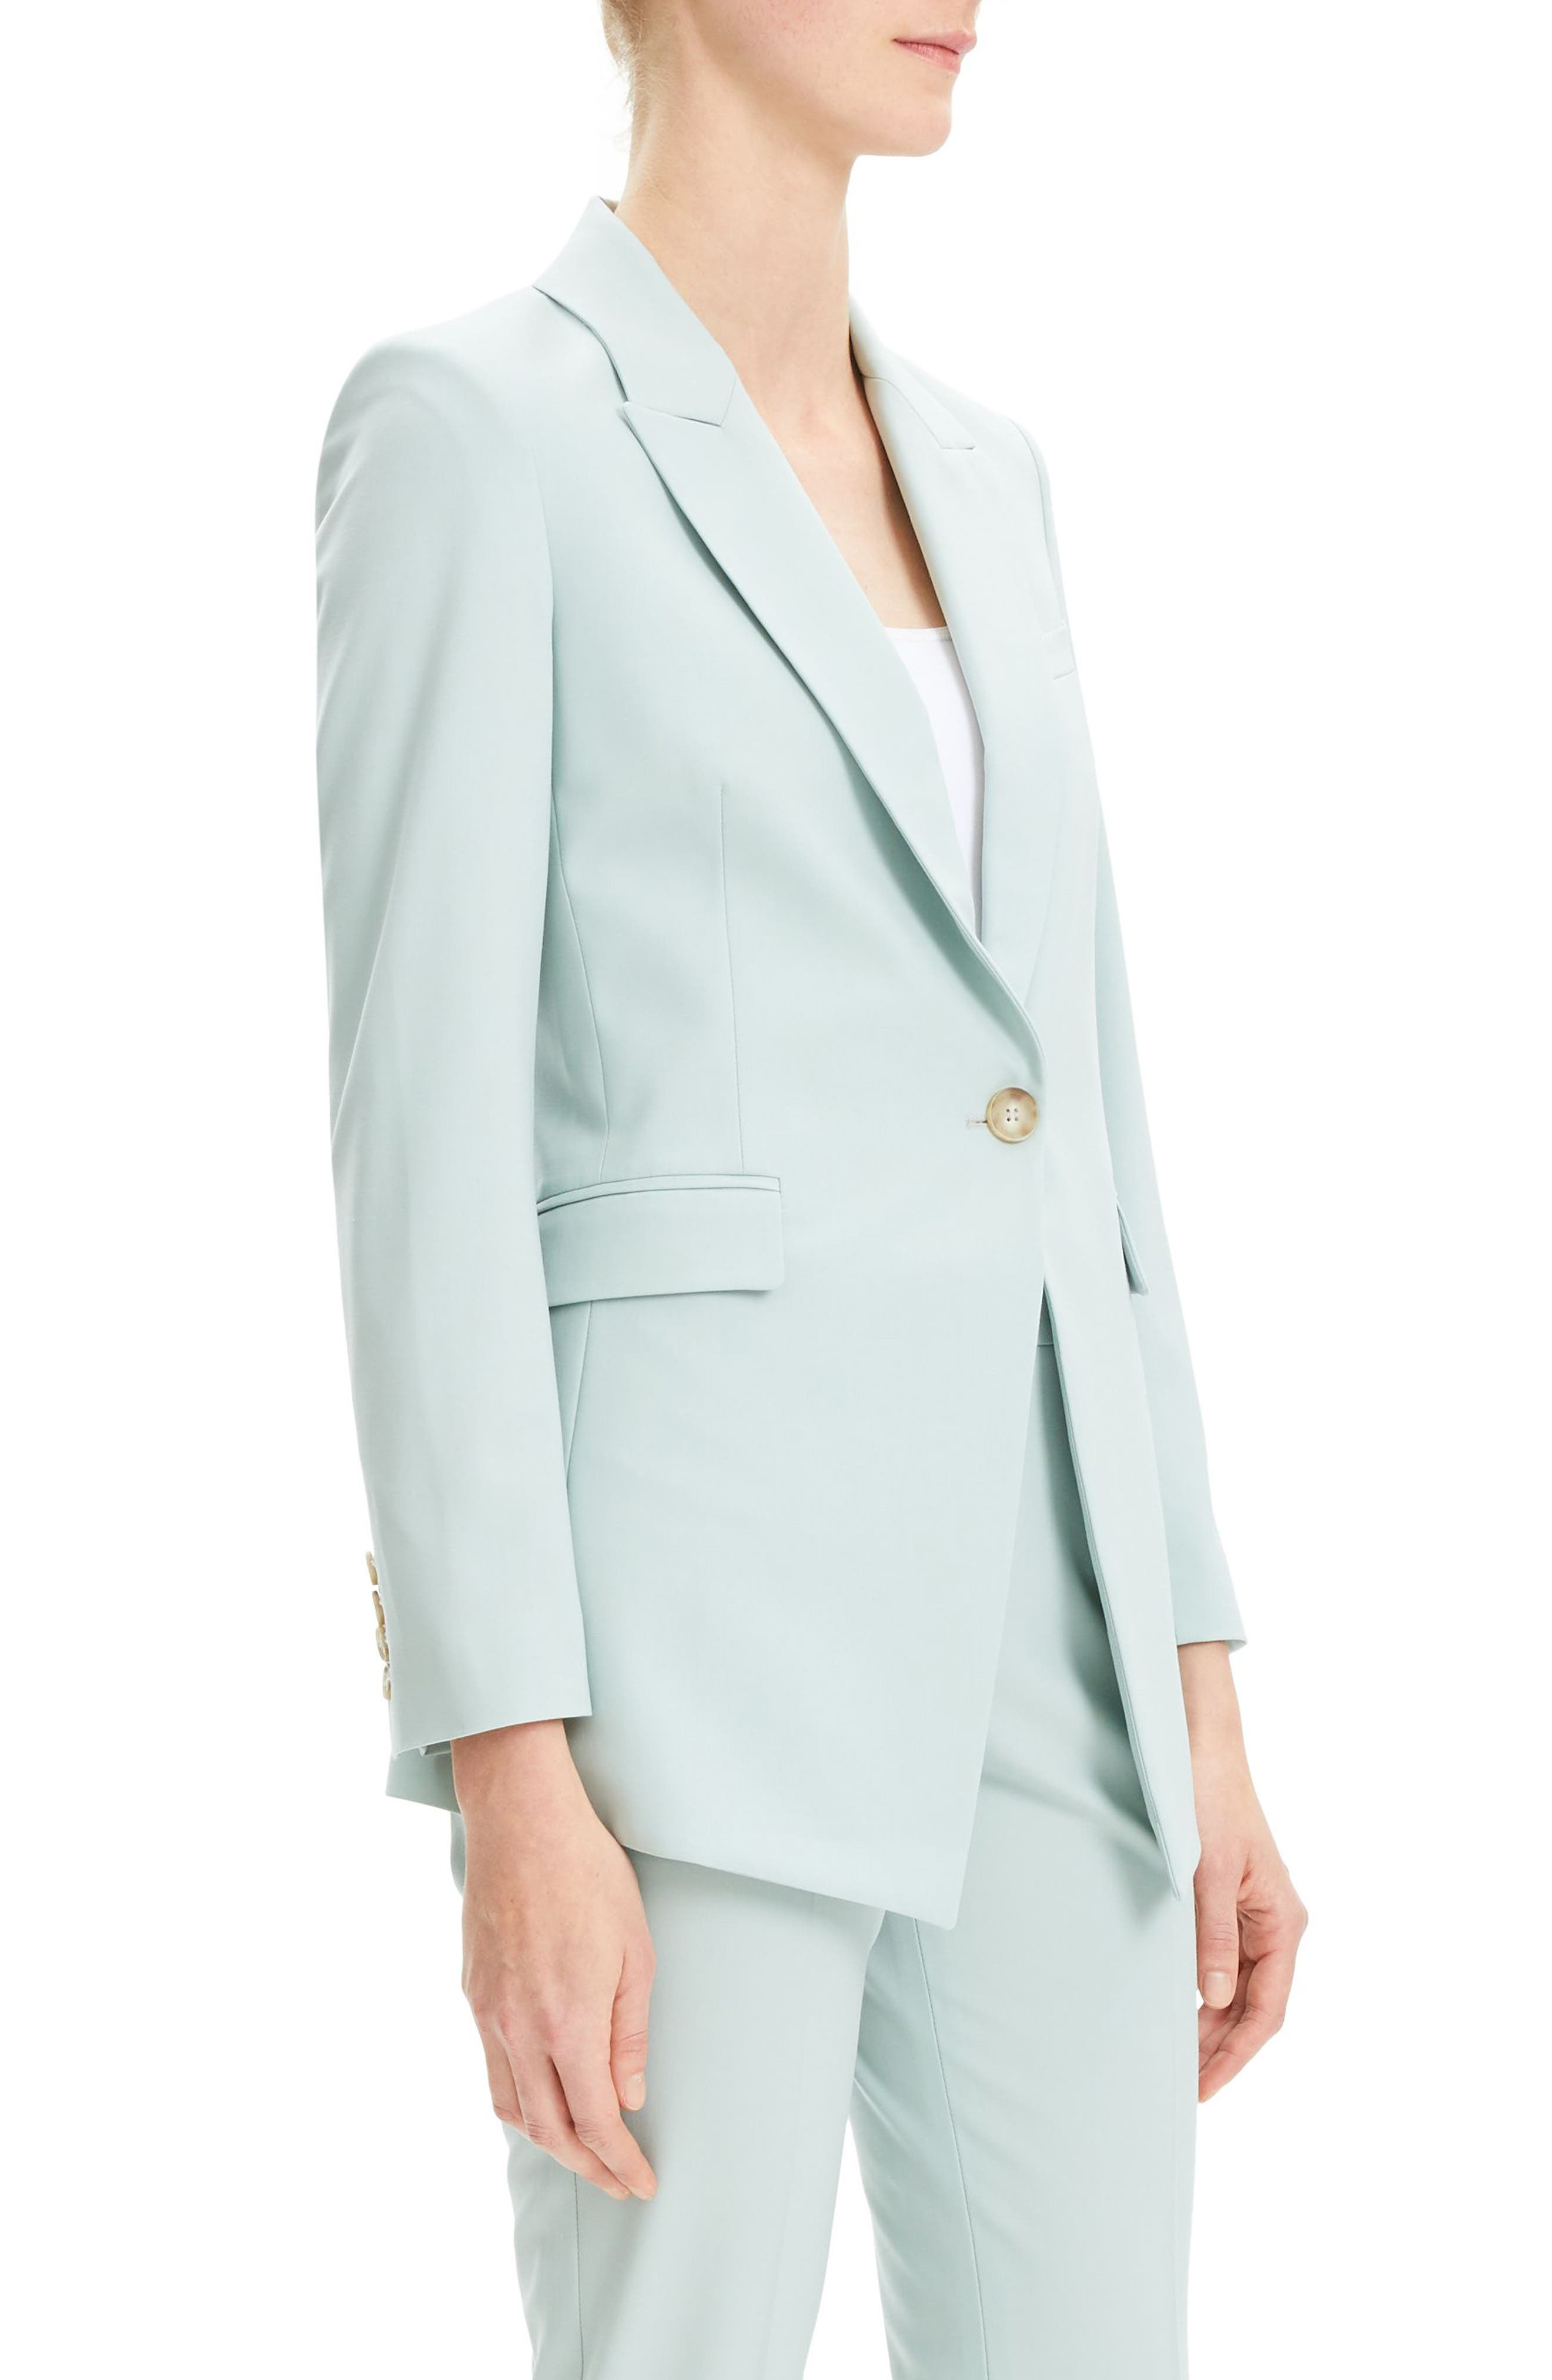 THEORY, Etienette B Good Wool Suit Jacket, Alternate thumbnail 3, color, OPAL GREEN